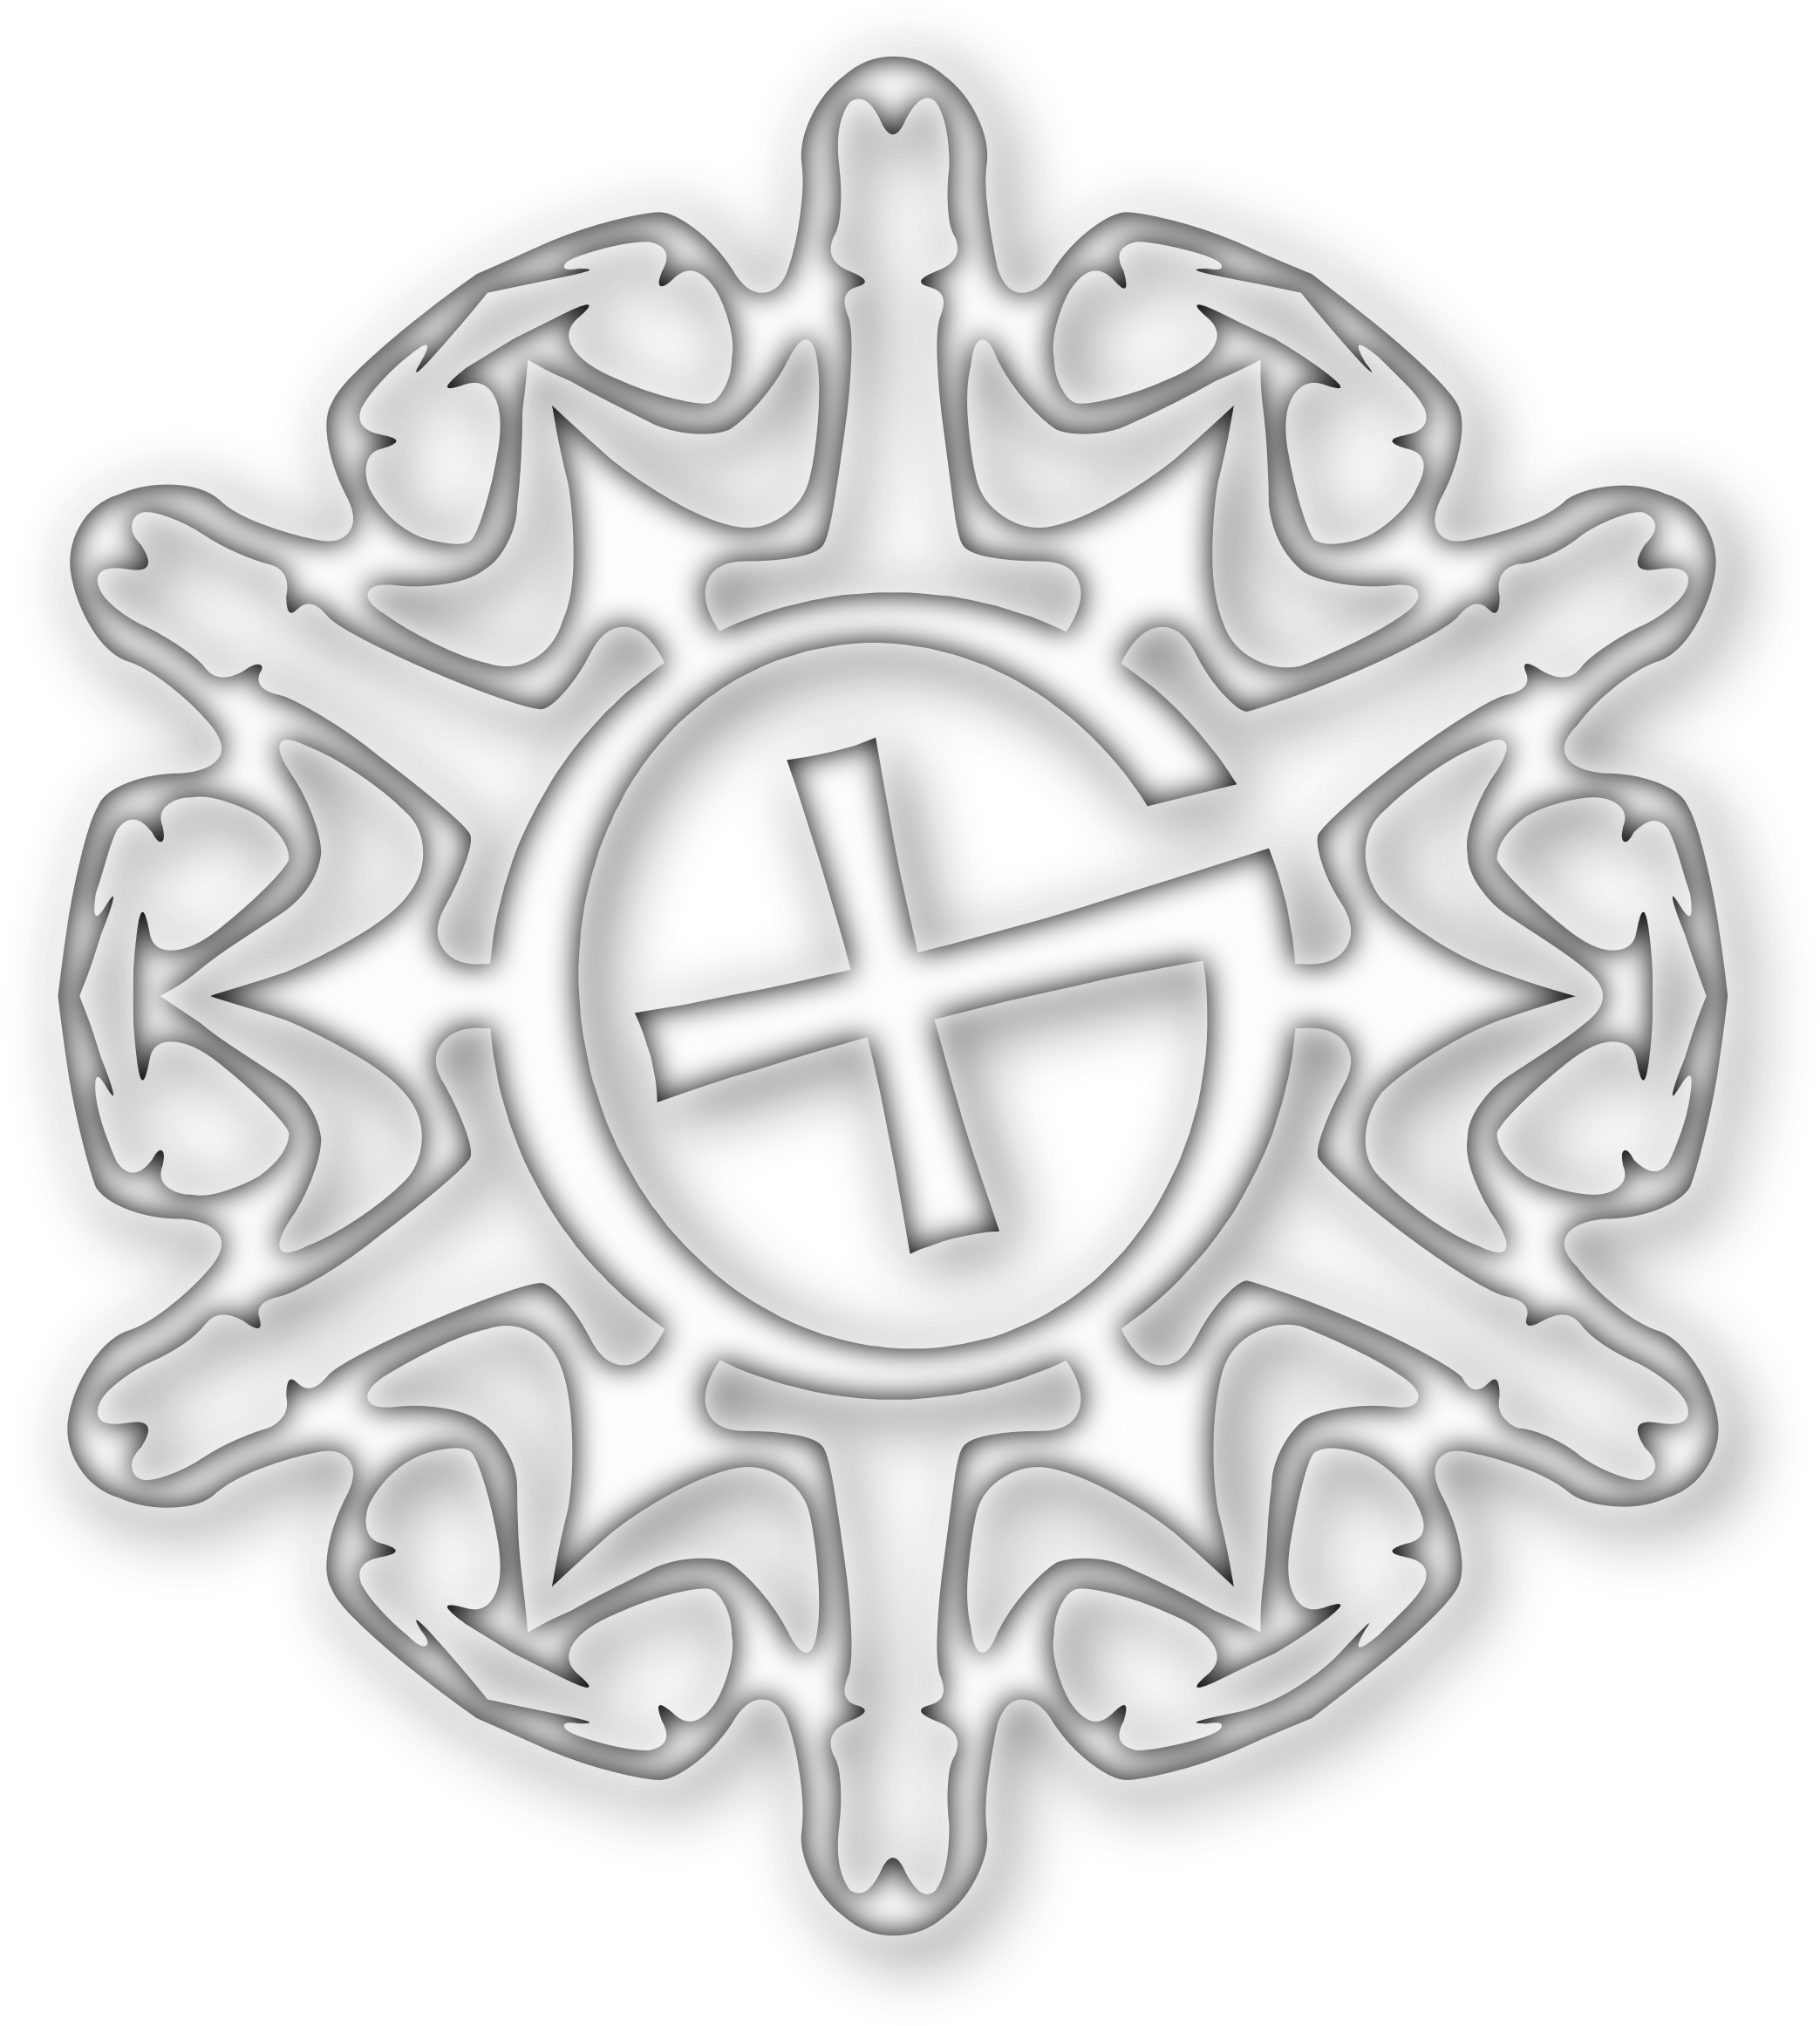 Snowflake cross clipart image library library Clipart - Geocaching snowflake image library library